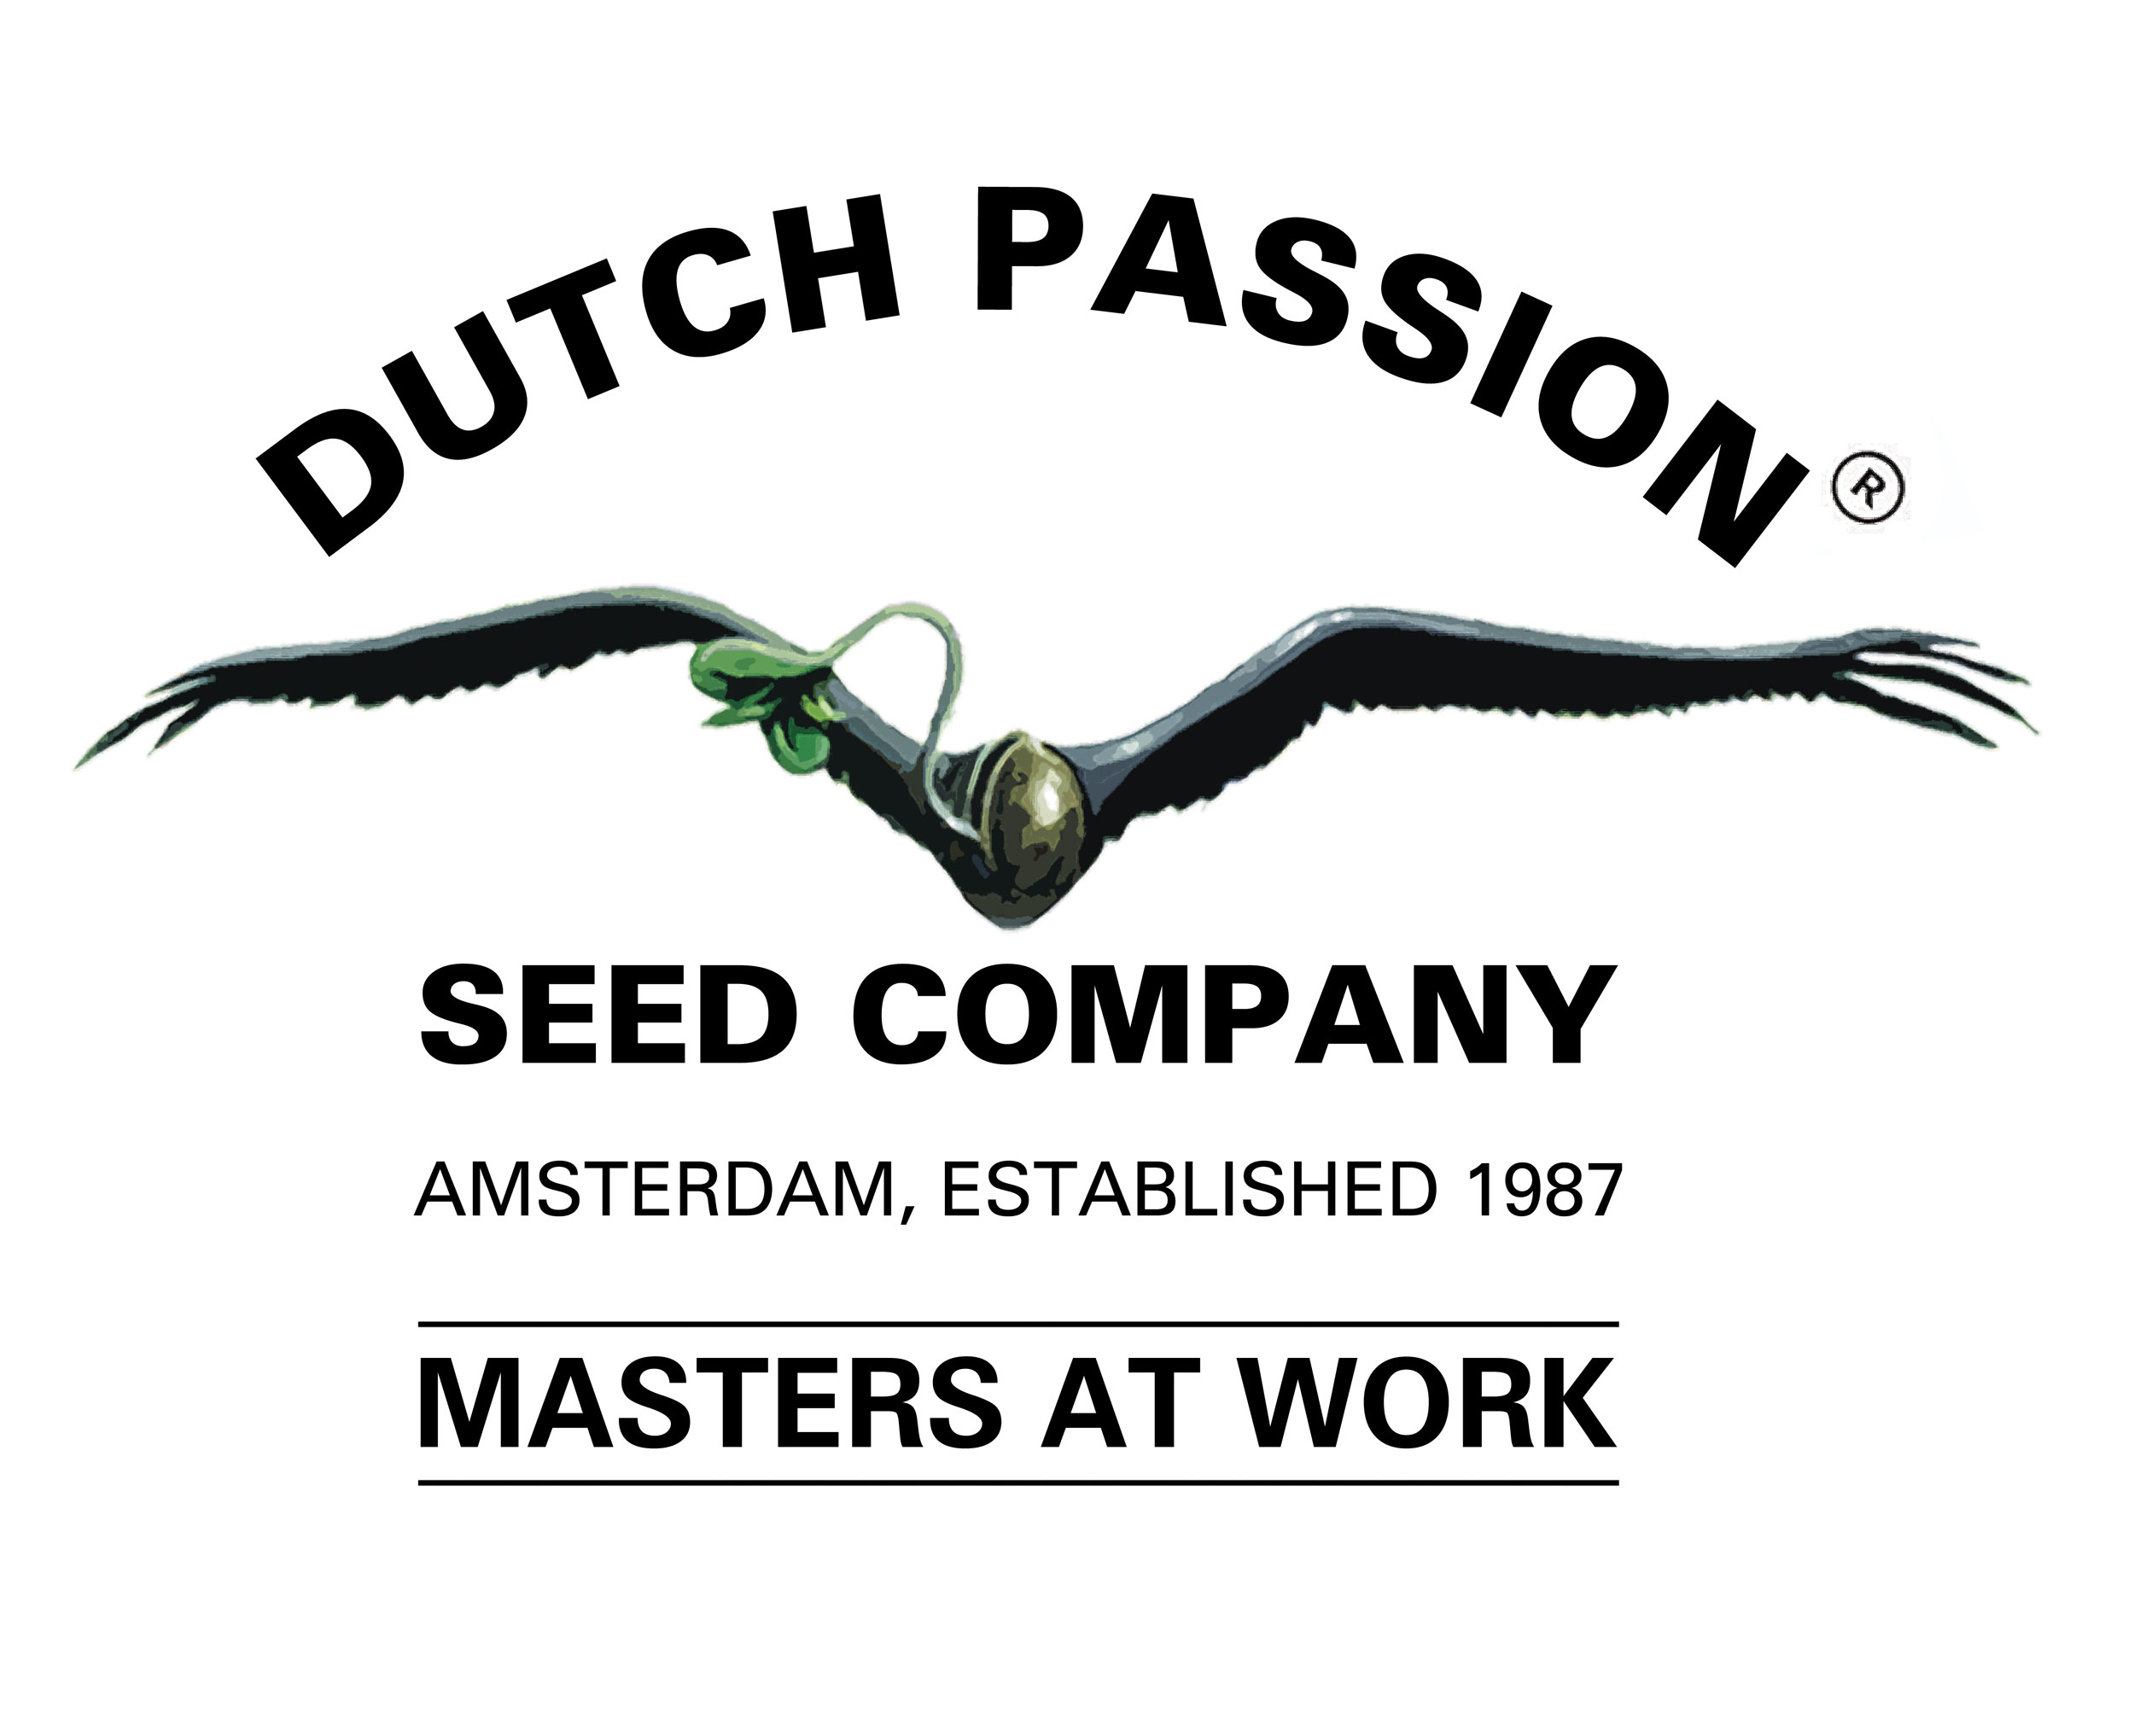 Dutch Passion Blue AutoMazar 7ks